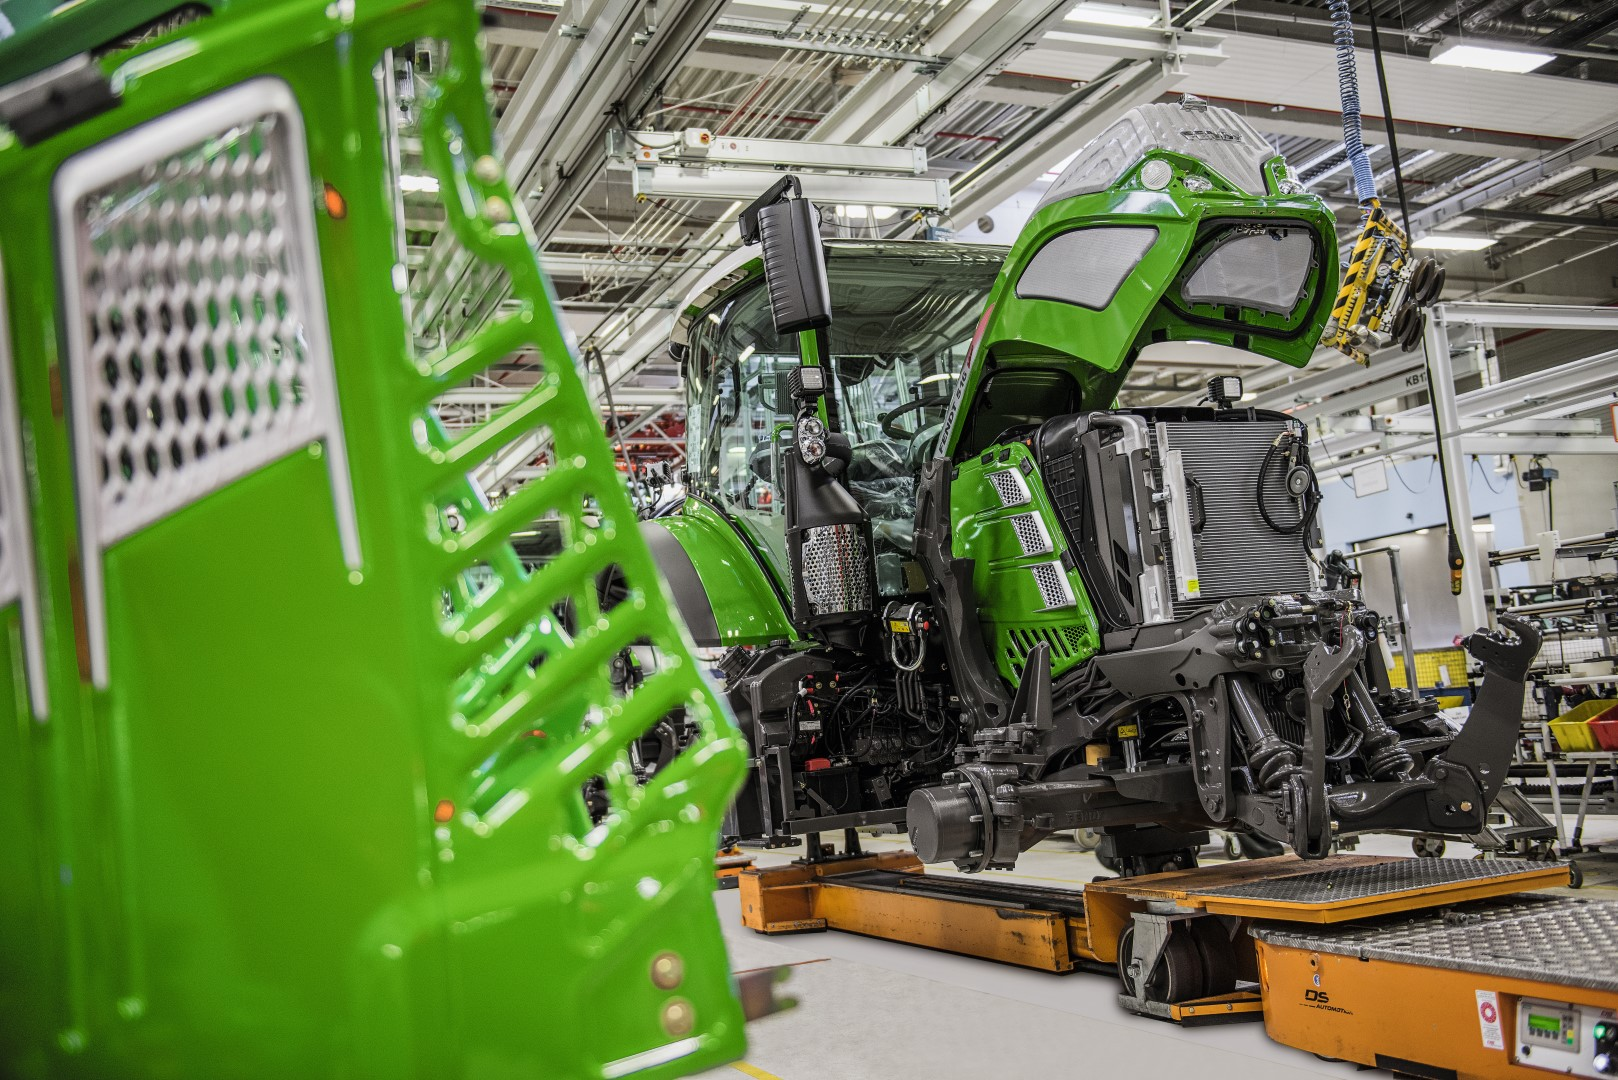 'Whole new experience' for visitors to Fendt factory